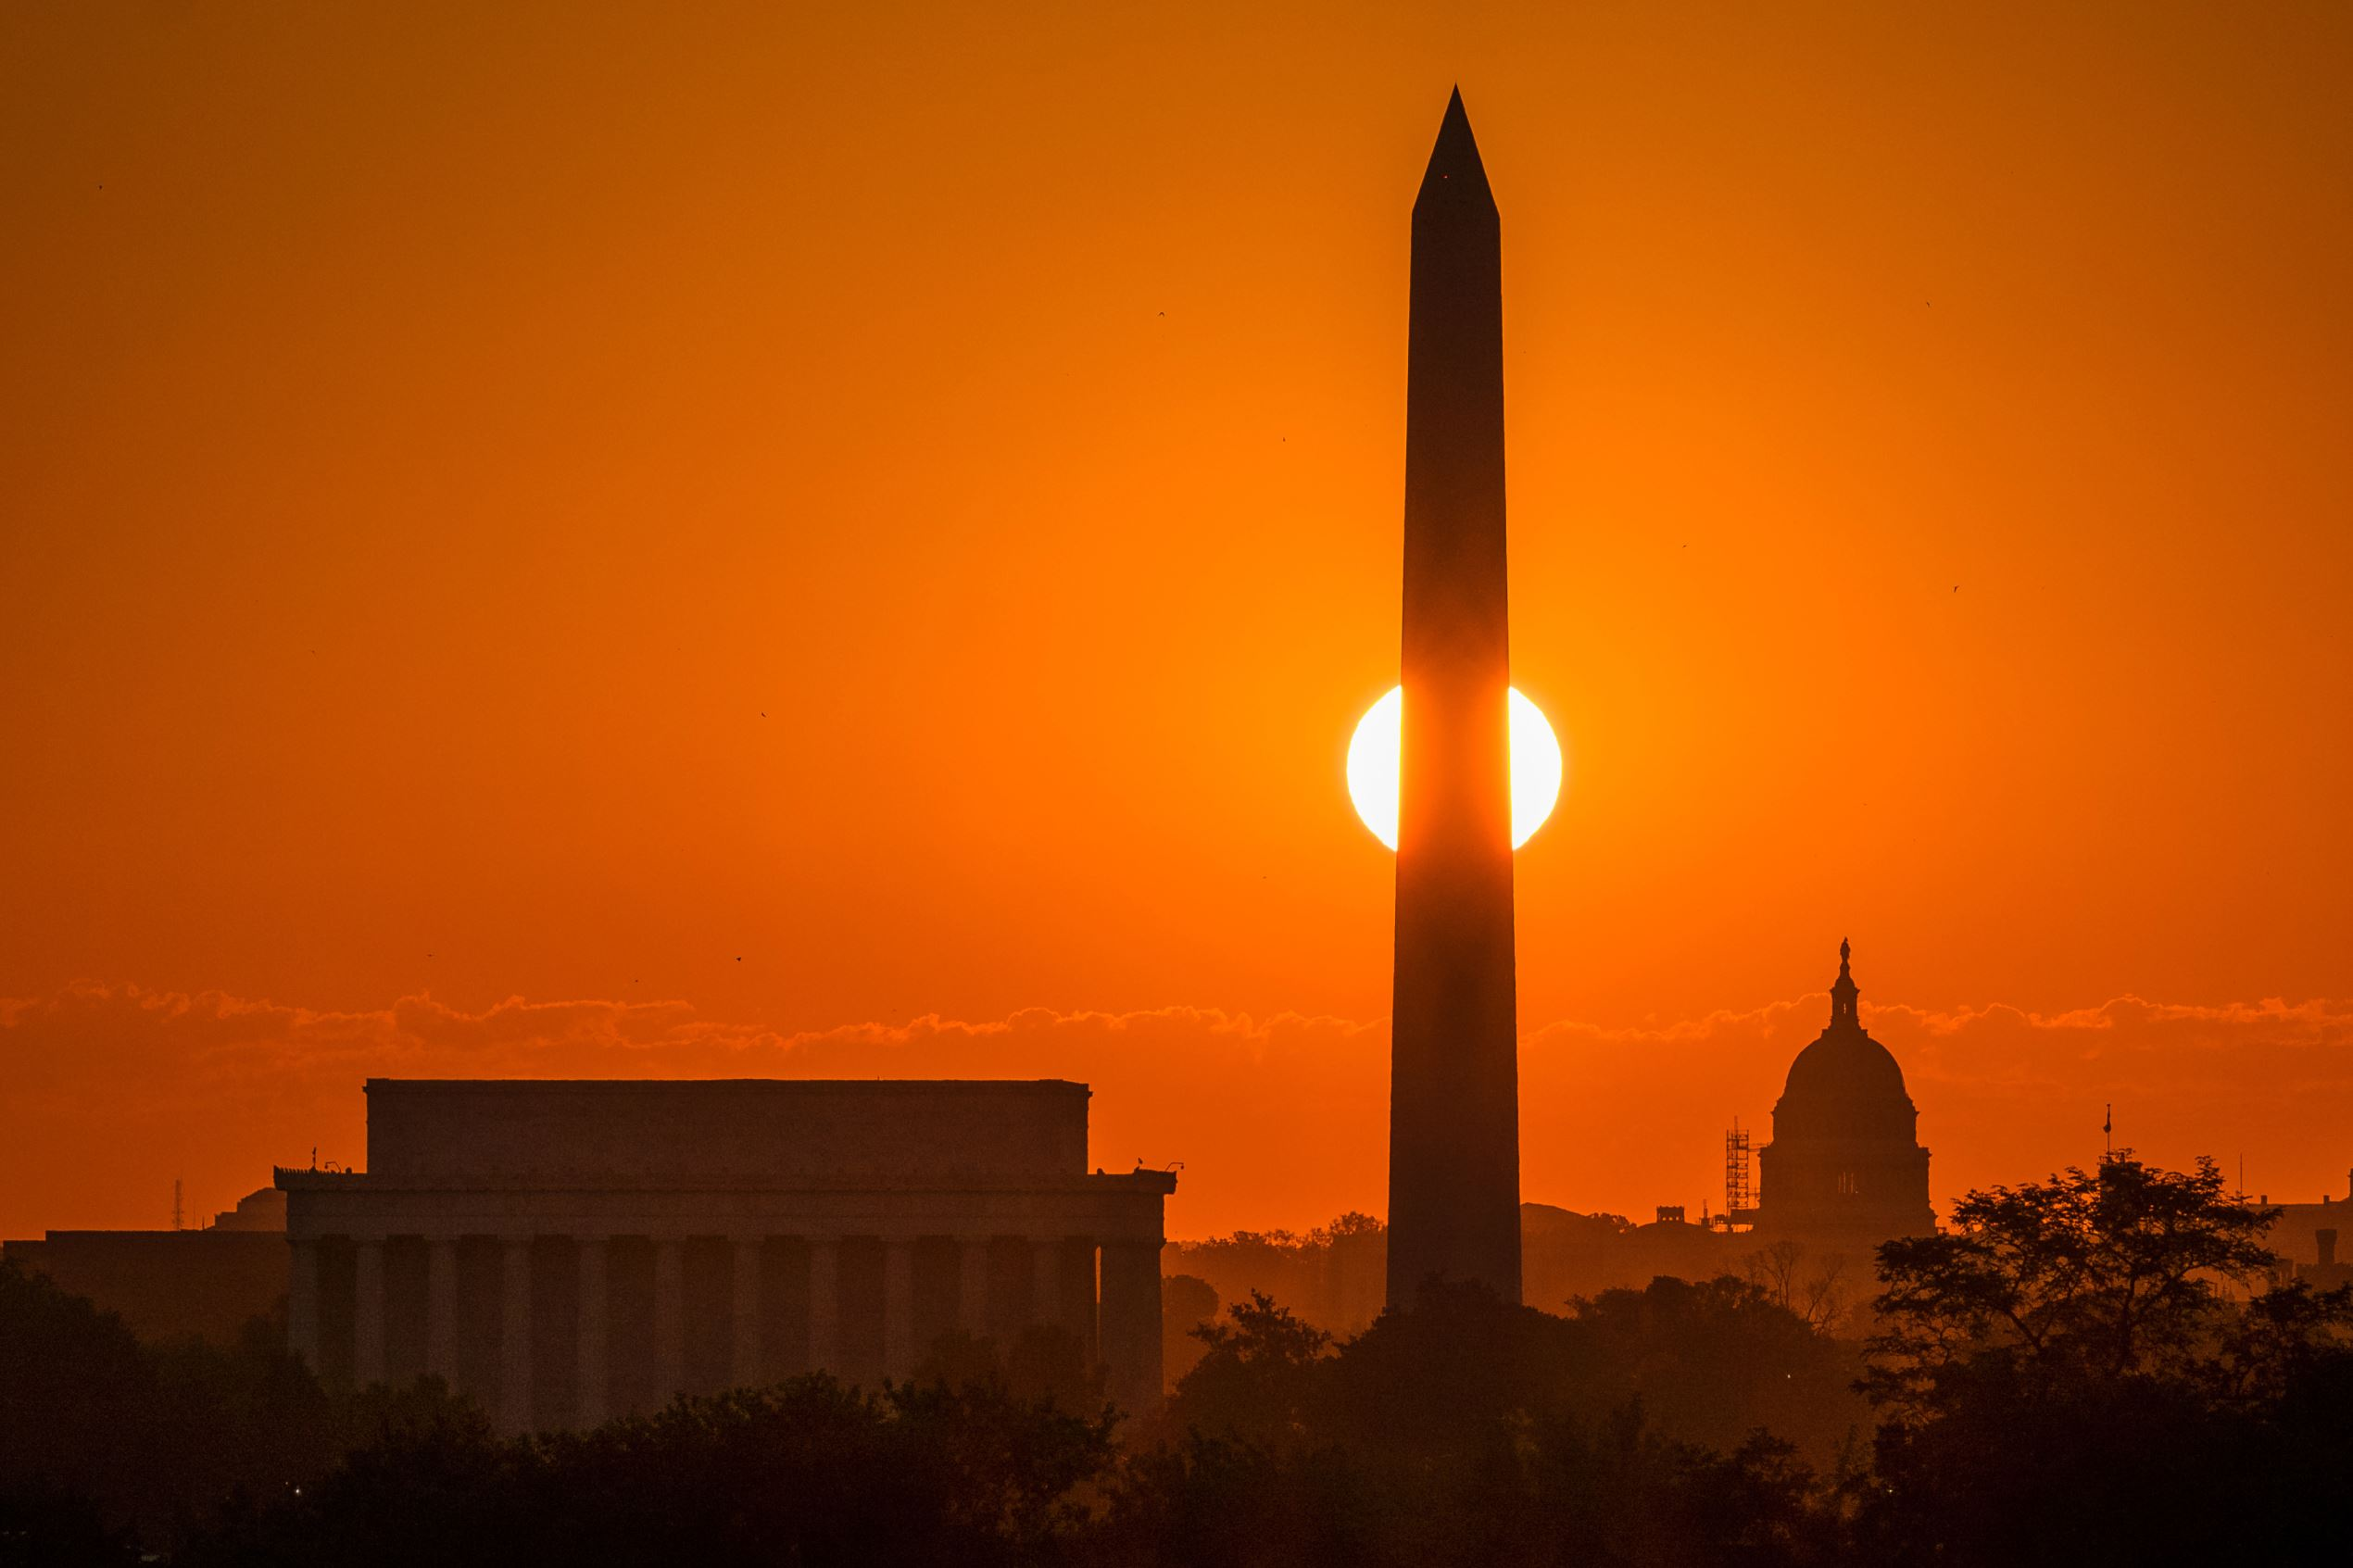 Слайд 82 из 86: The rising sun passes behind on the Washington Monument early in the morning Wednesday, Sept. 14, 2016, in Washington on what is expected to be another 90 degree day in the Nation's Capitol. (AP Photo/J. David Ake)